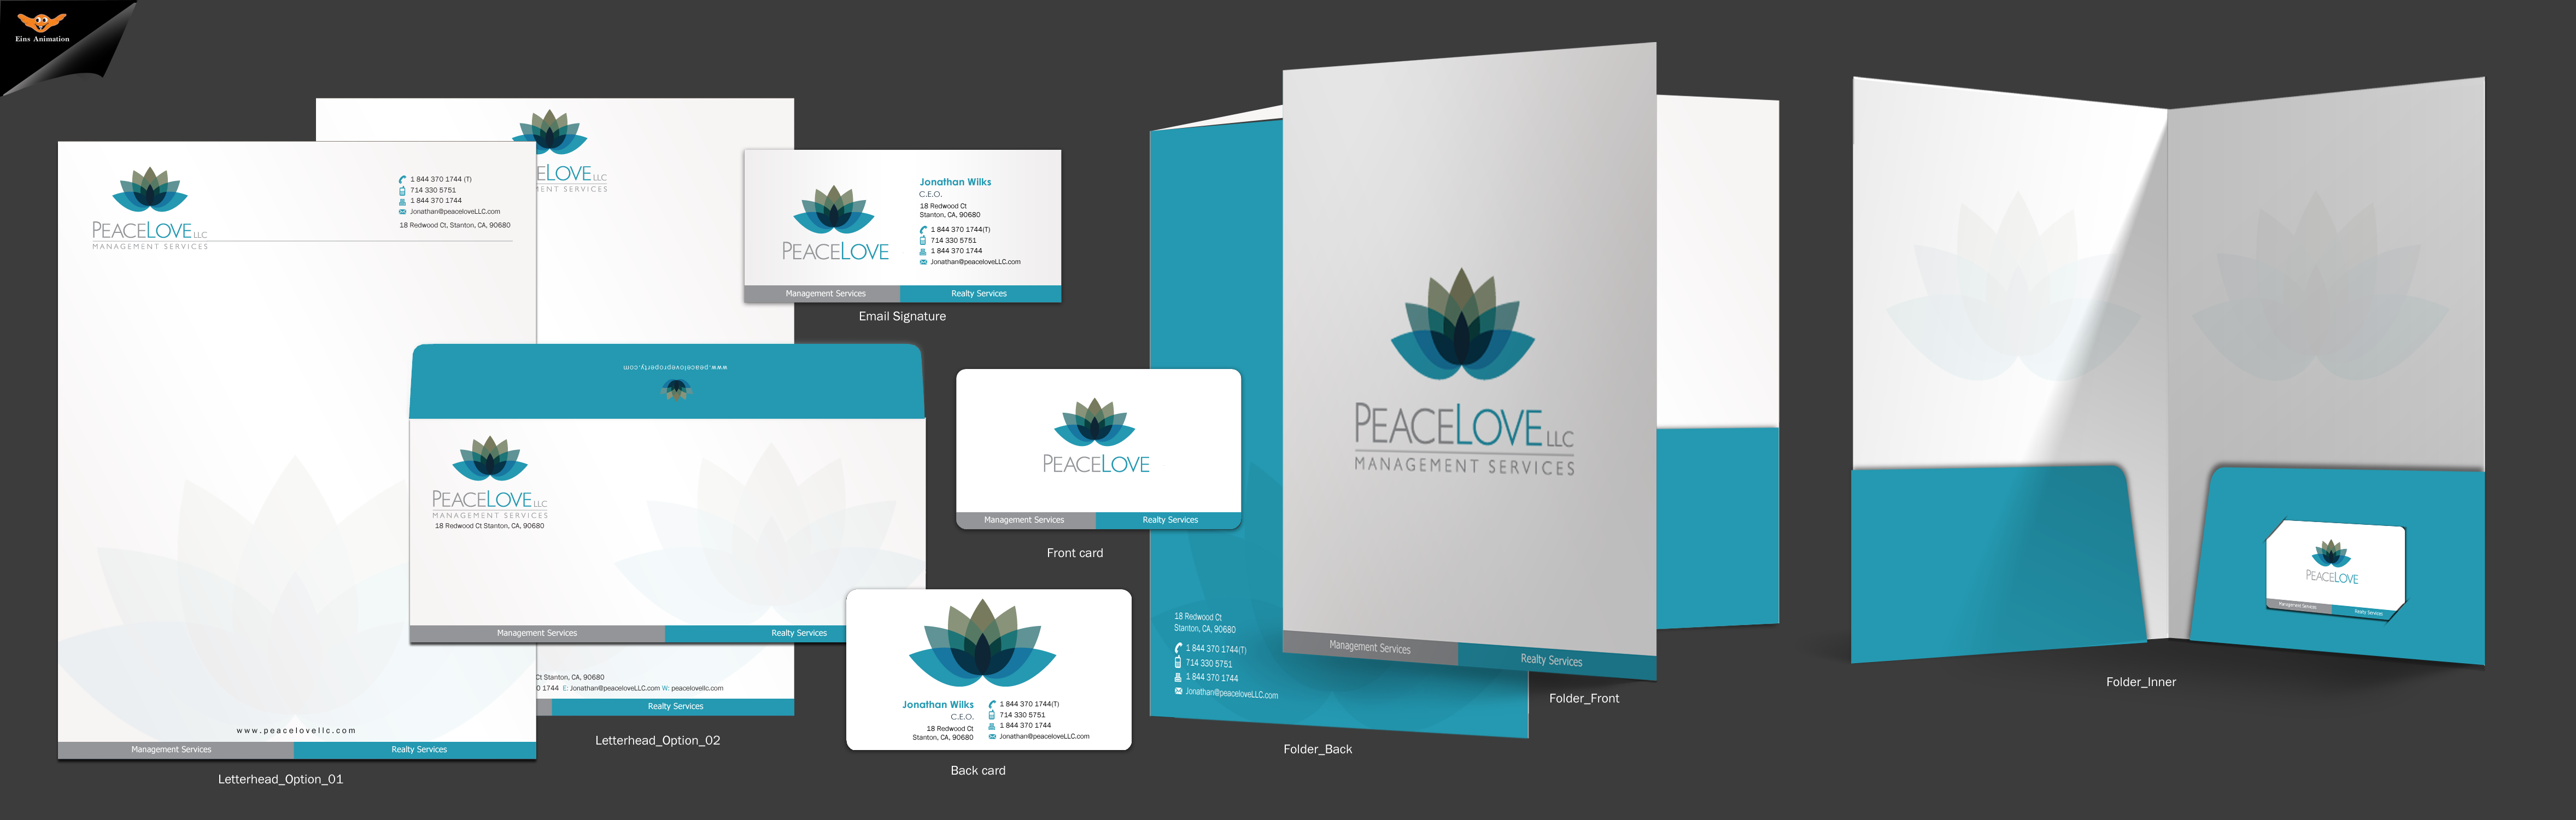 Peace Love LLC Business Cards and Stationary - Business Opportunities